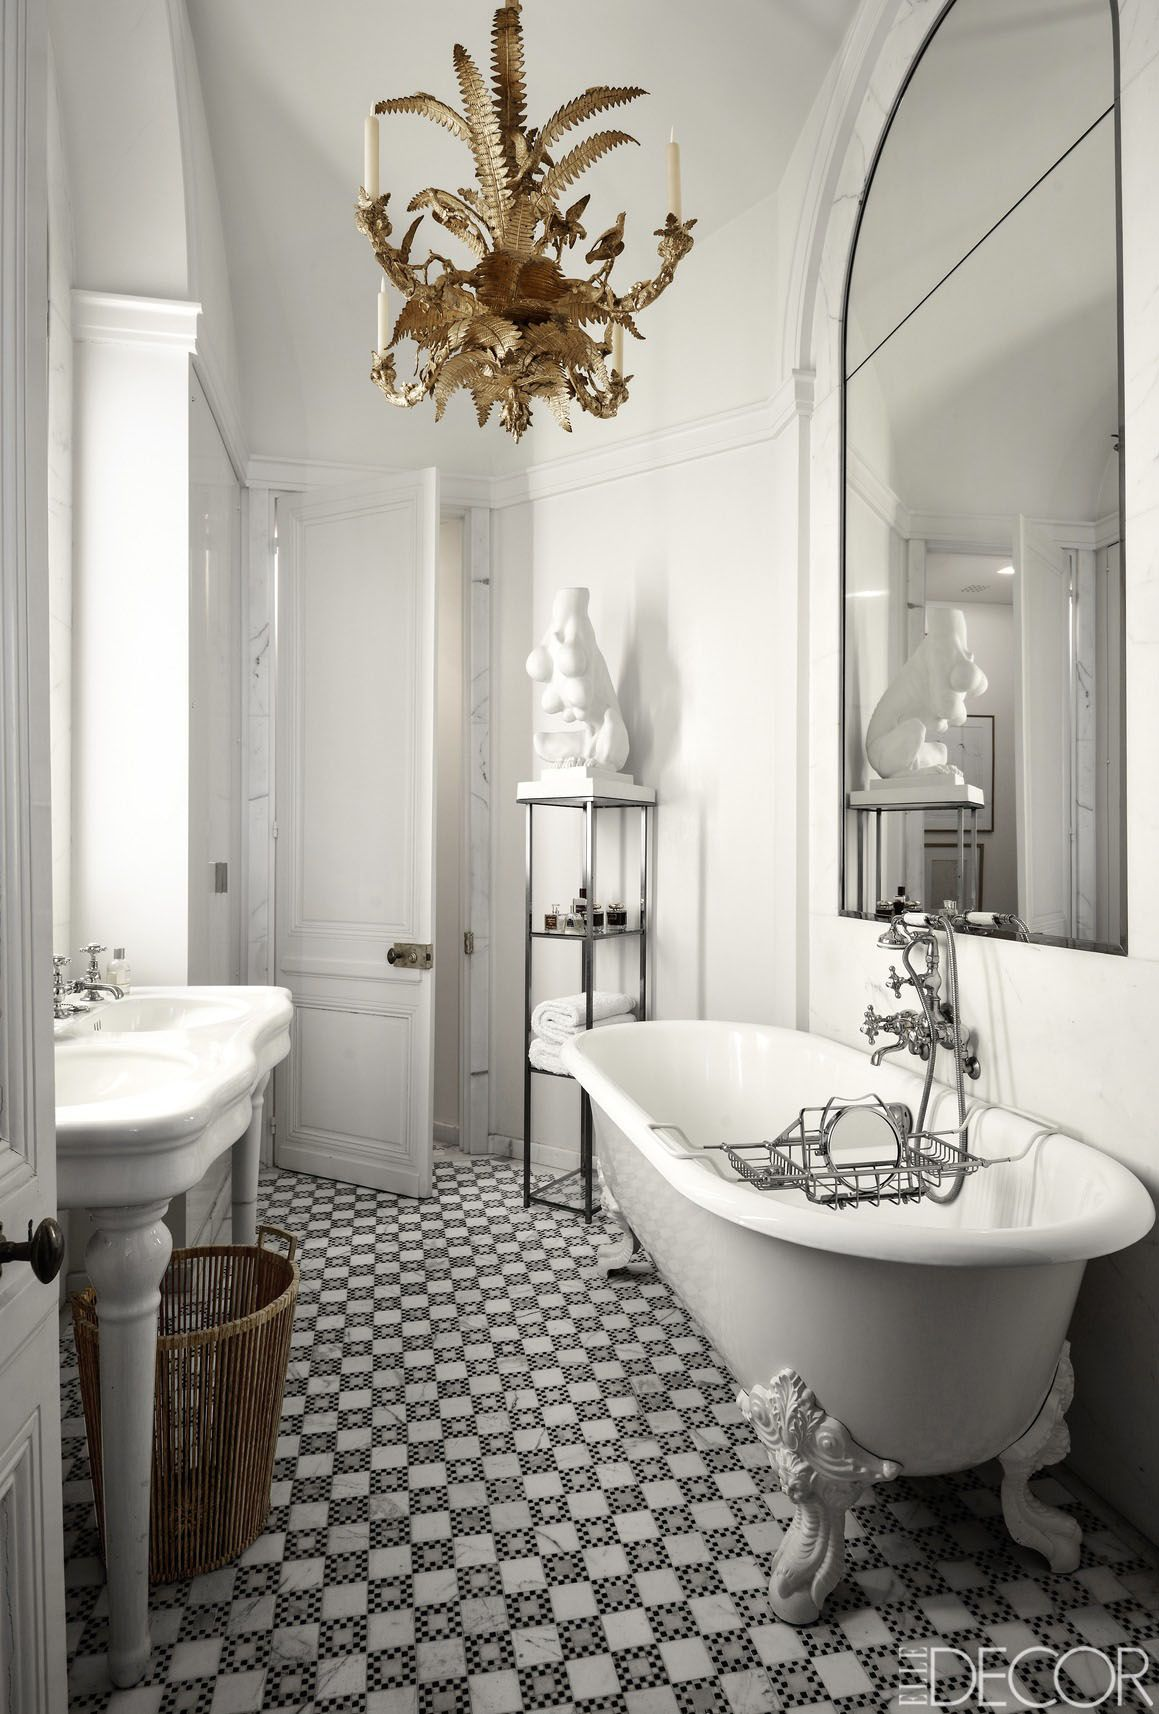 White Bathroom Design Ideas Glamorous 30 Black And White Bathroom Decor & Design Ideas Inspiration